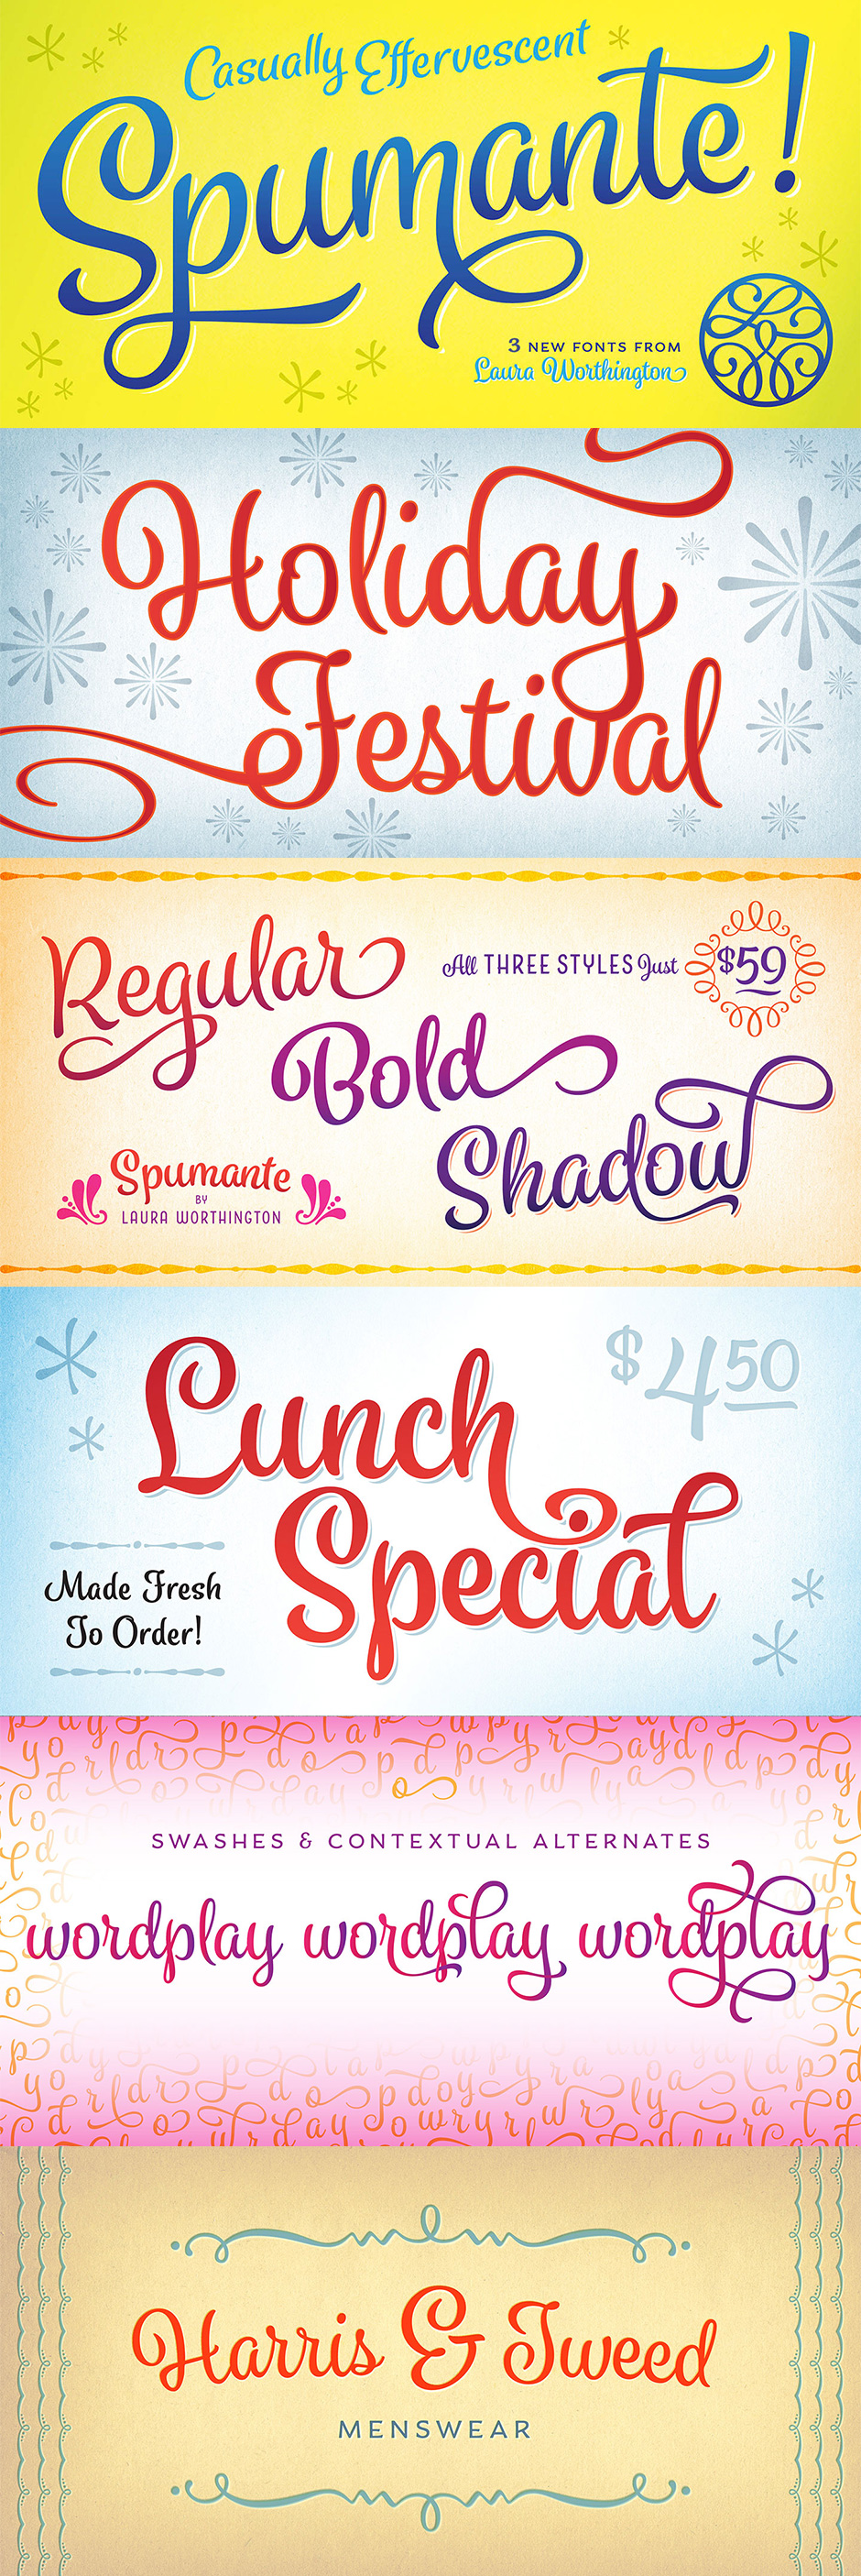 Definitive Fonts Bundle Spumante